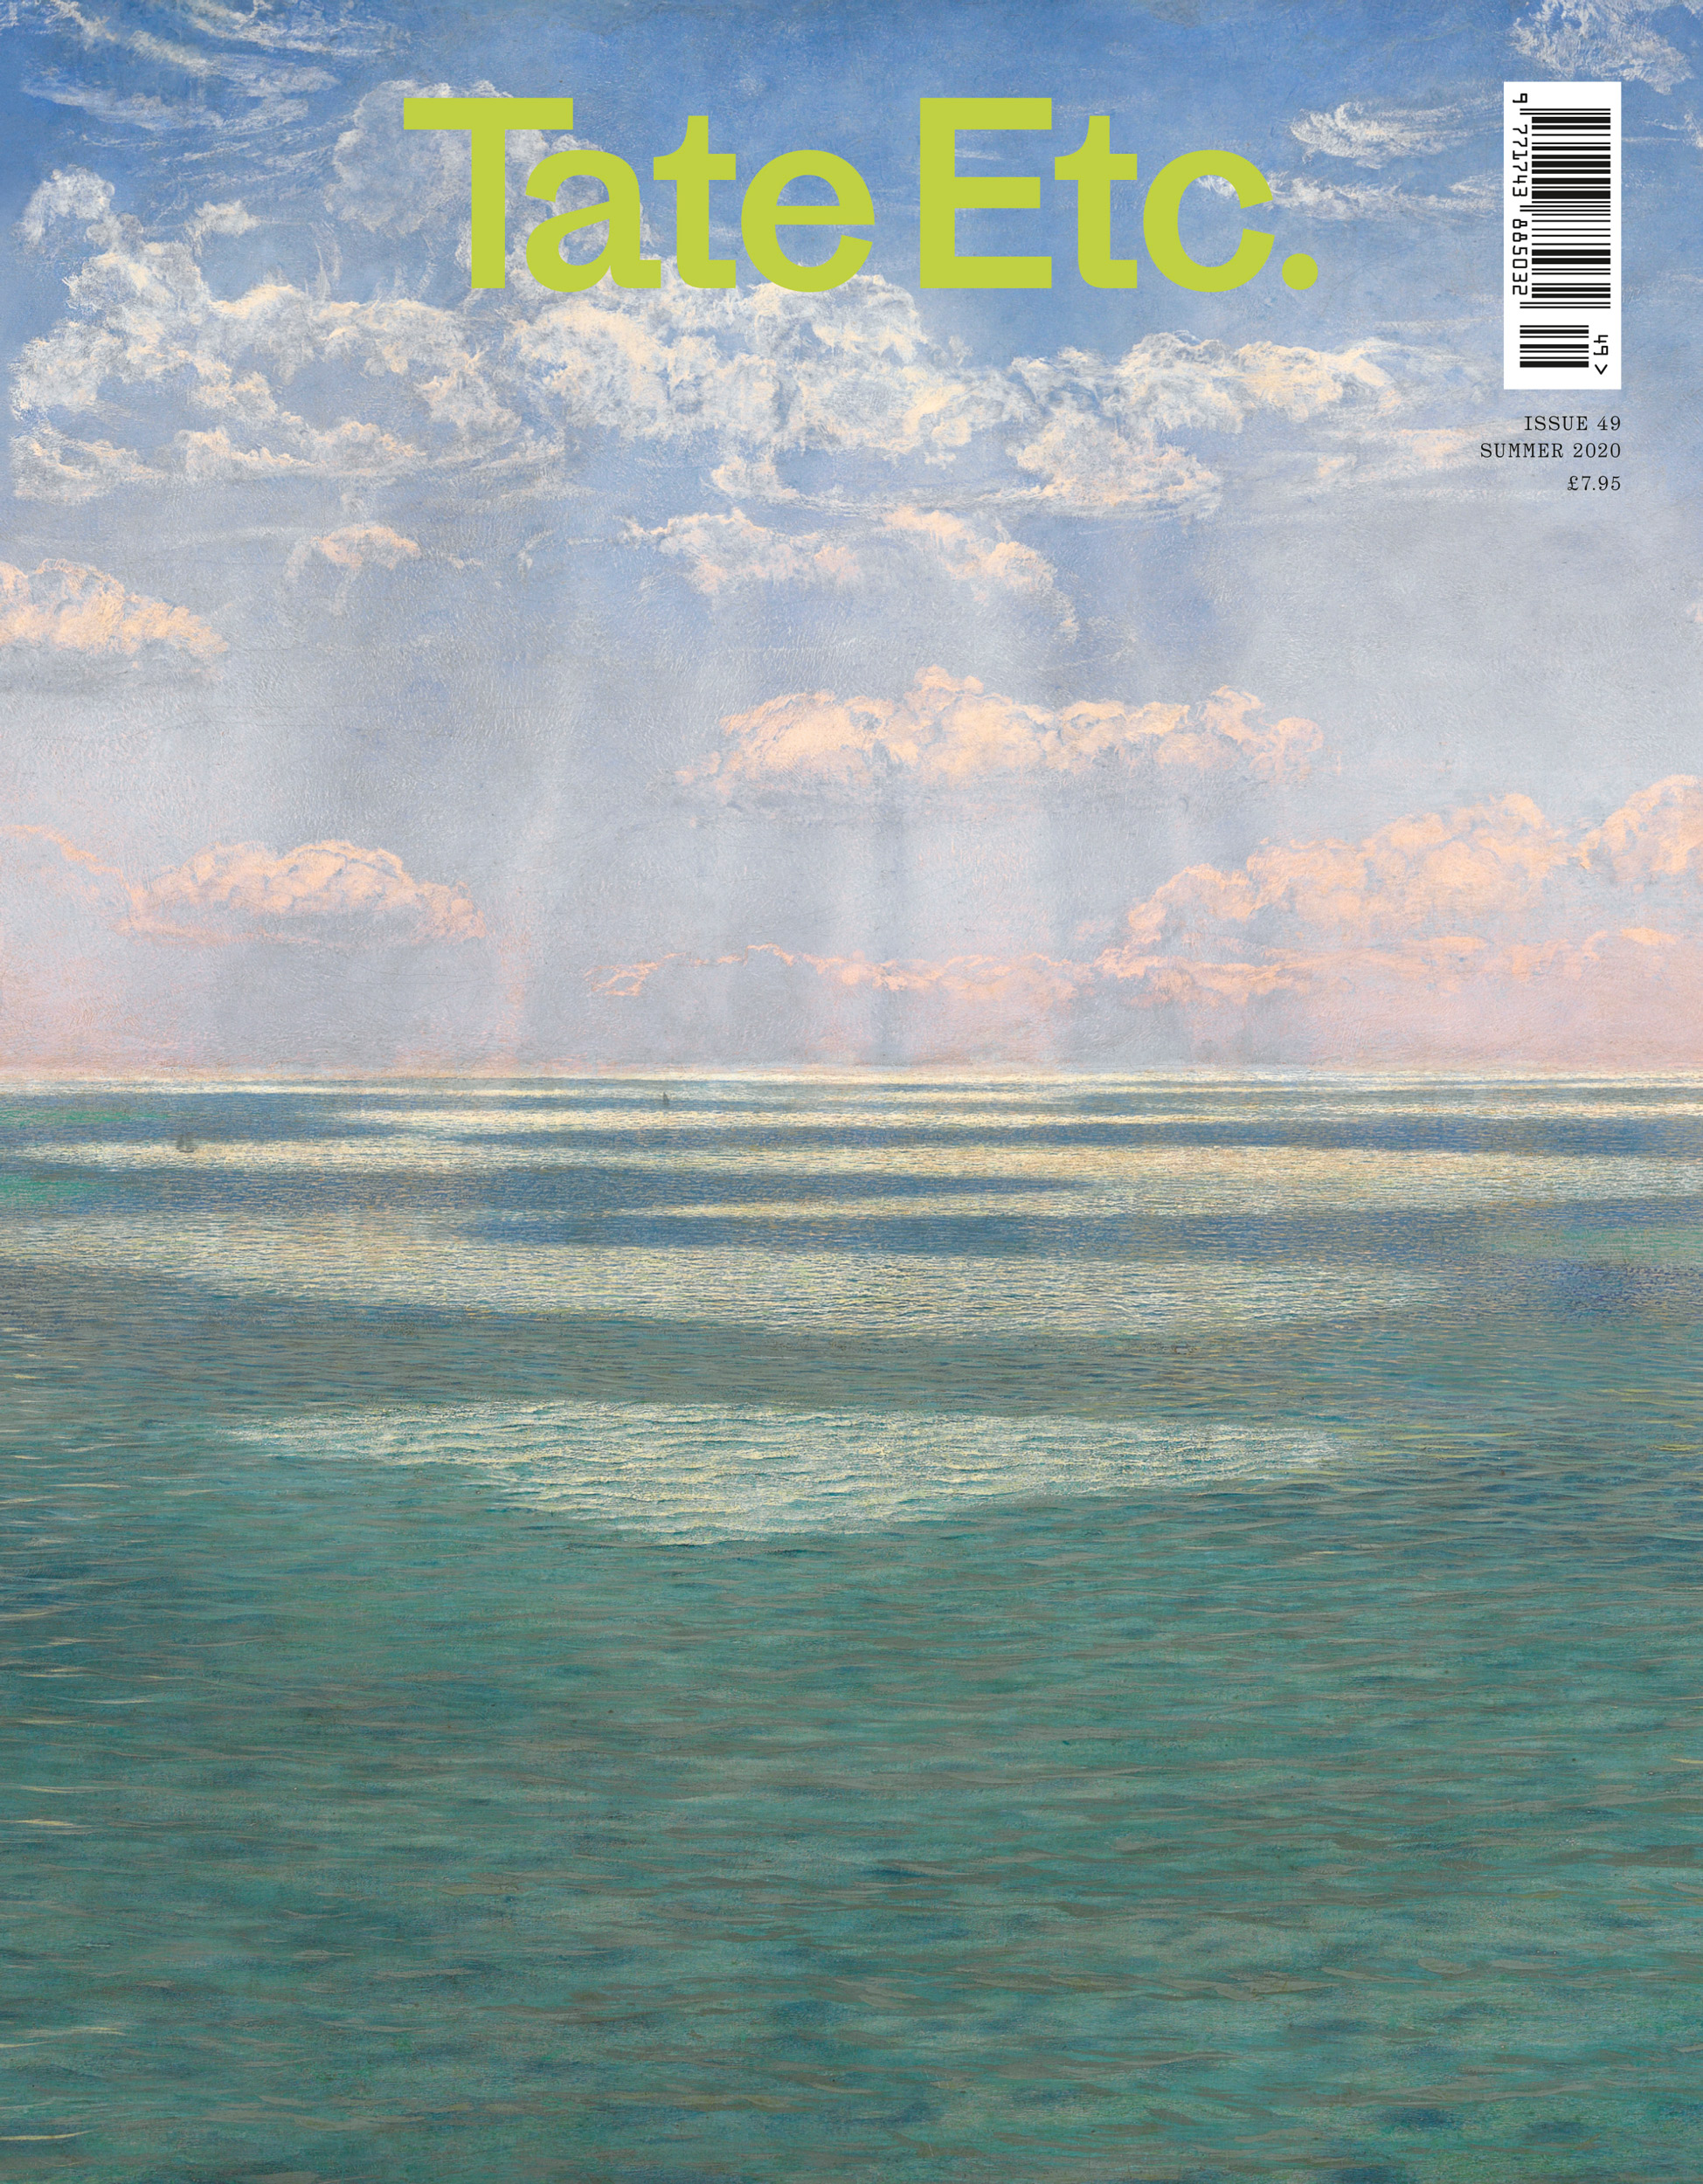 Front cover of Issue 49, 8 May